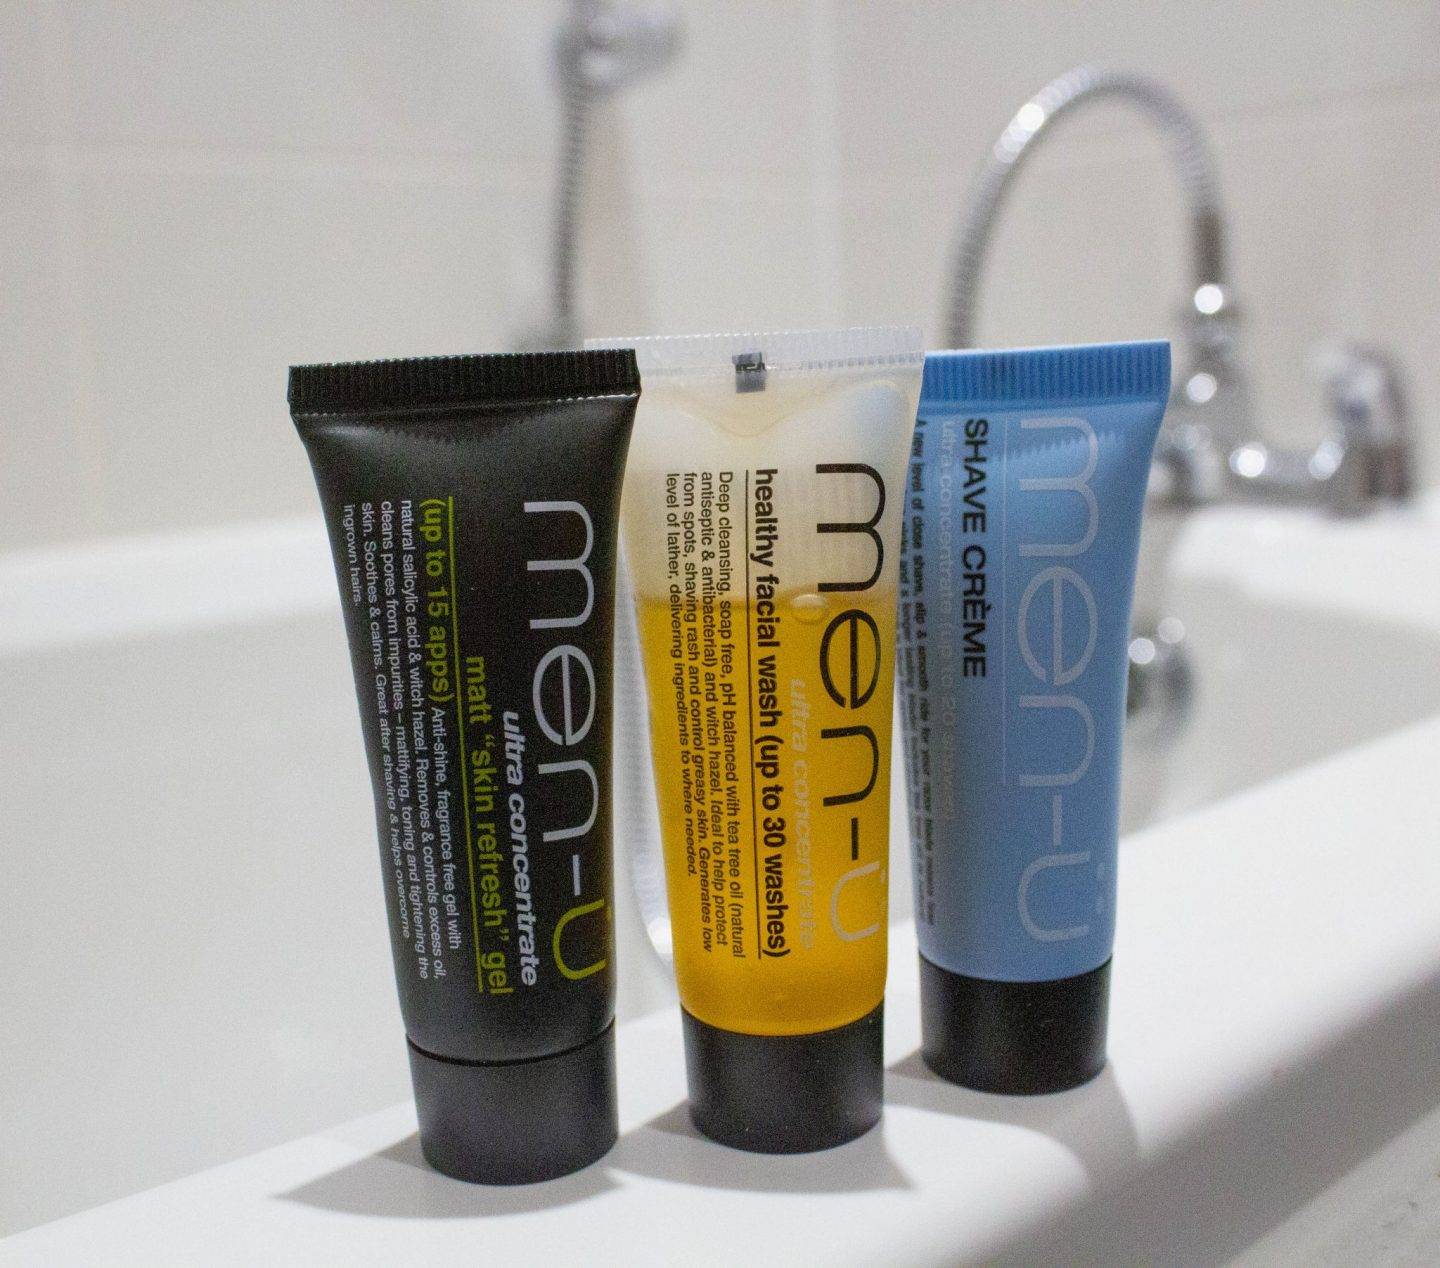 Men-ü, skin refresher set, dad blog